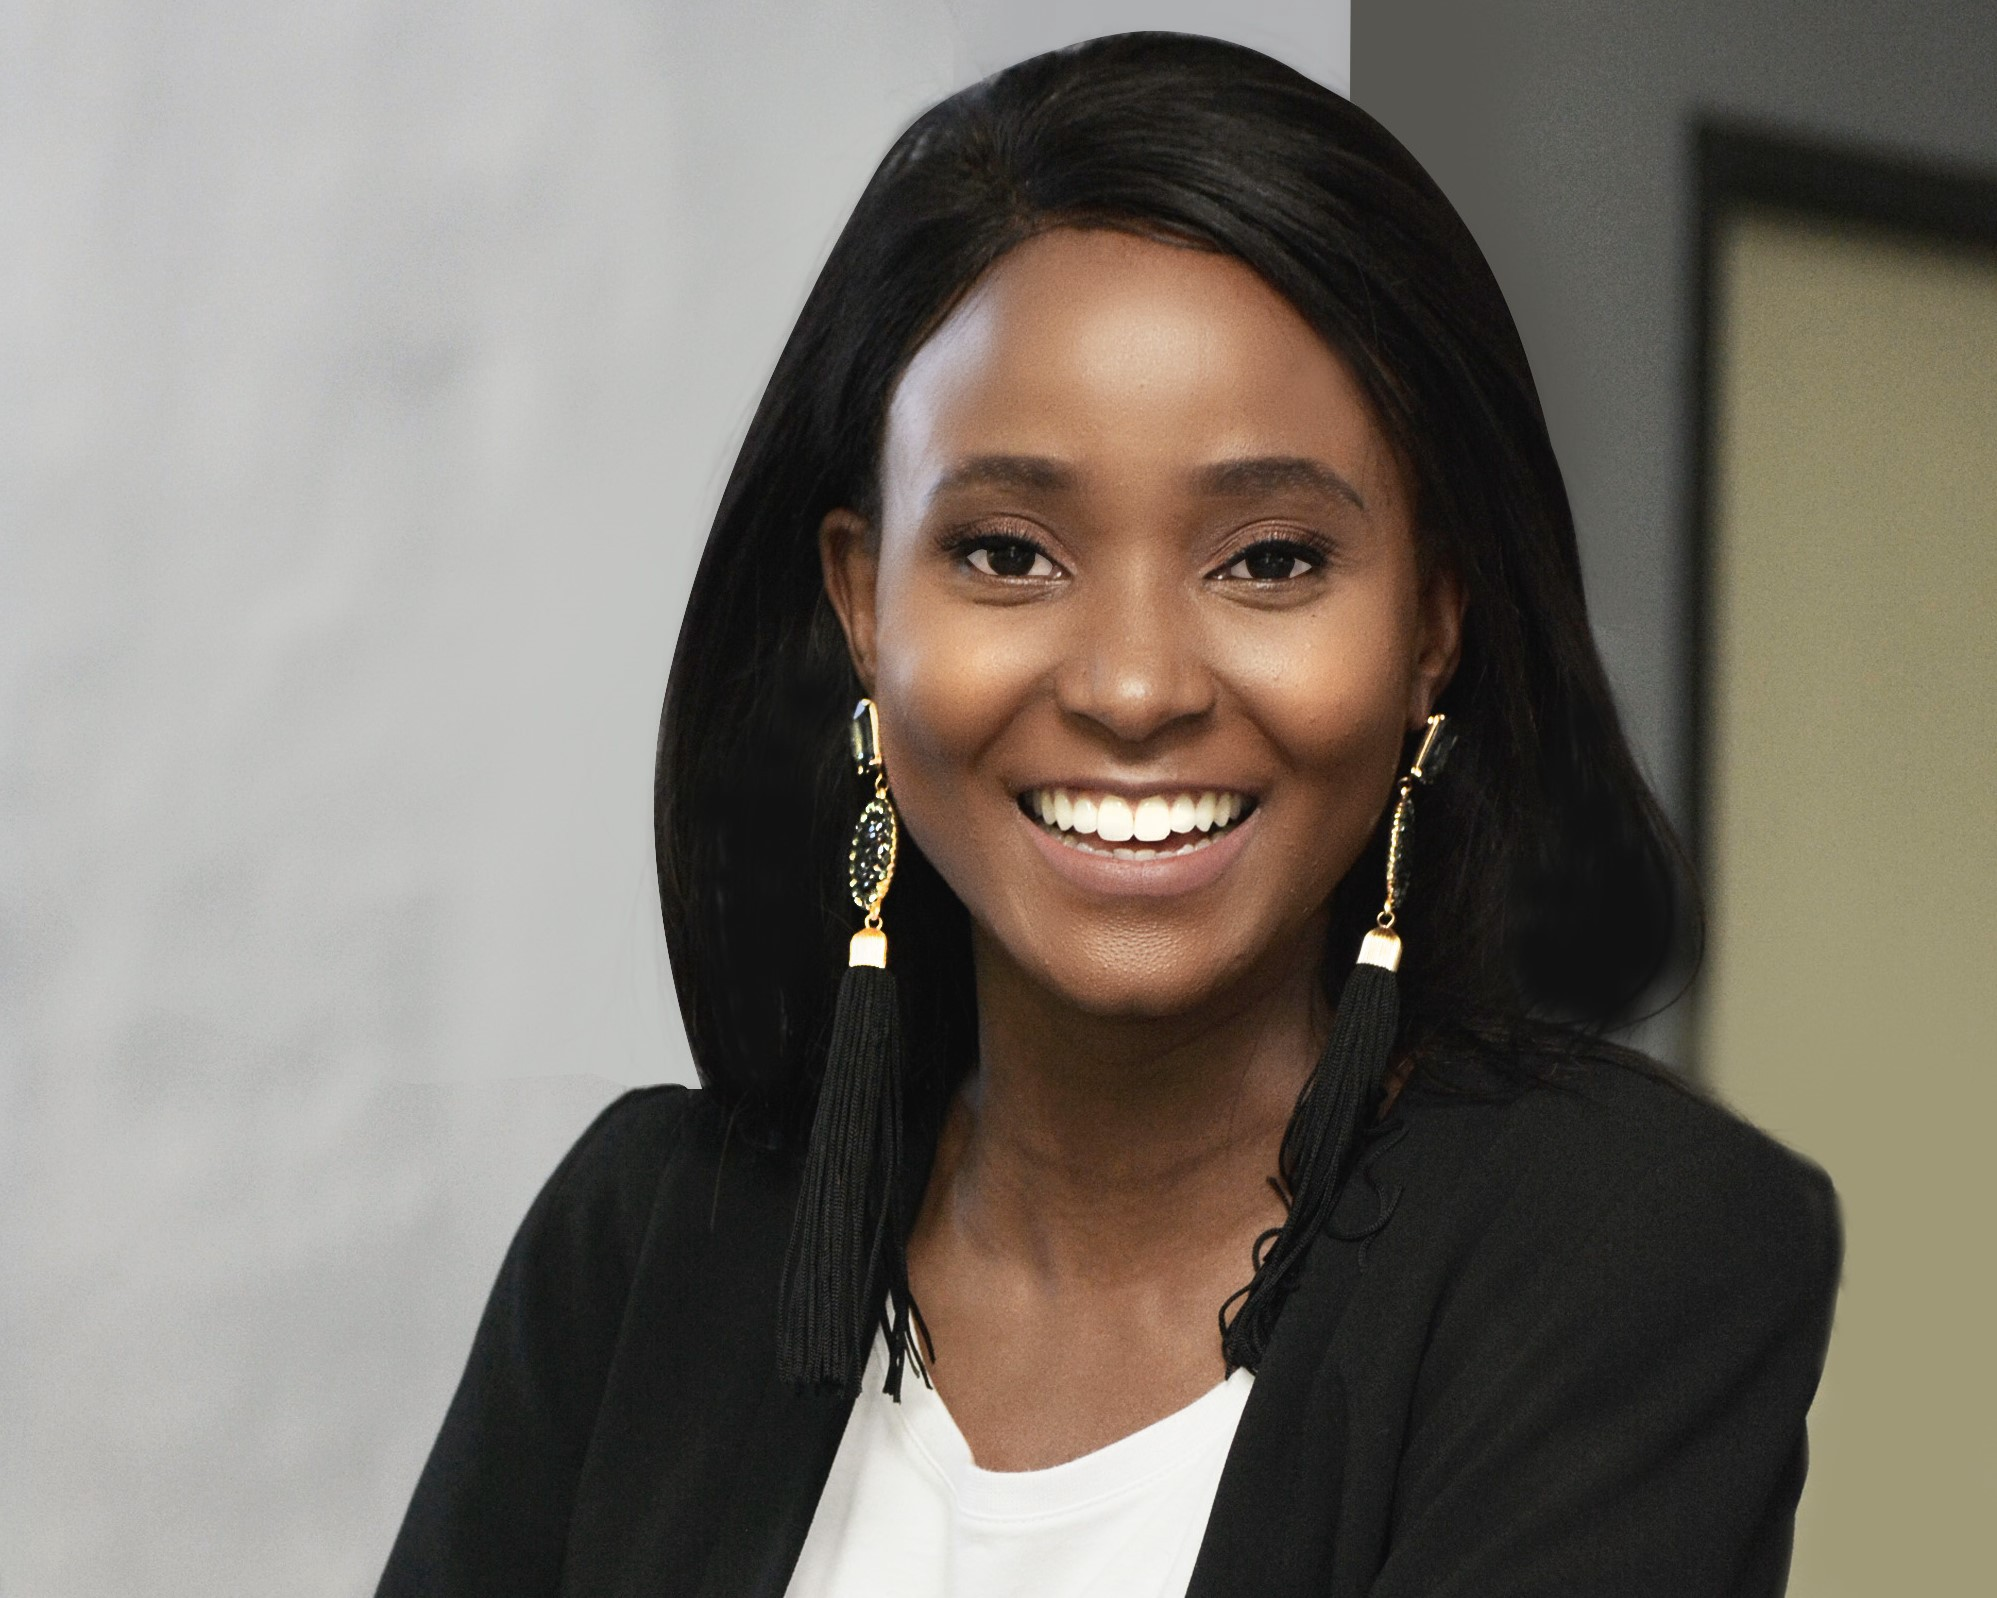 A young woman from Botswana smiles at the camera, with her arms folded. She wears a black blazer and white T-shirt.